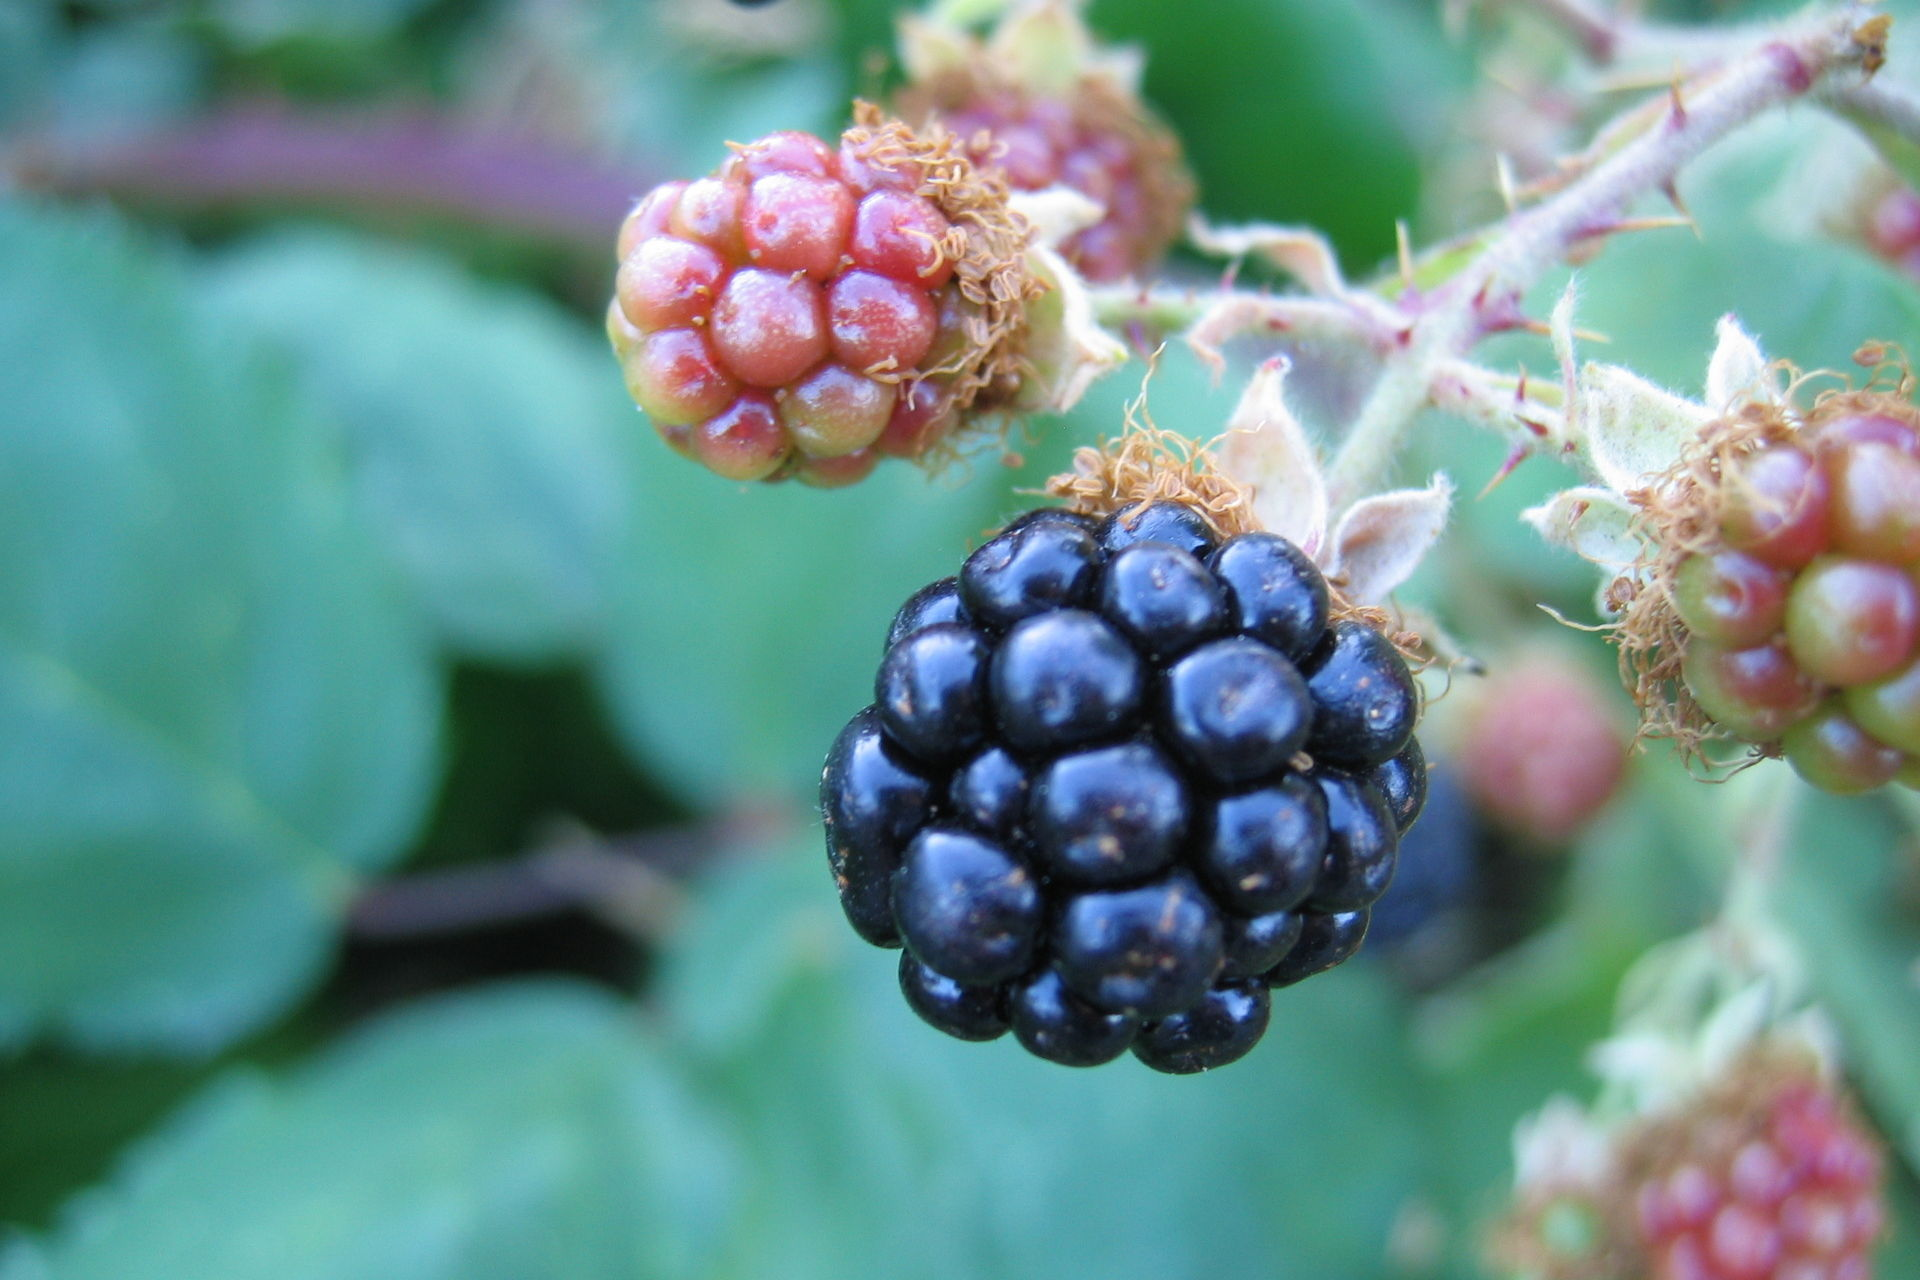 Blackberries. Photo credit: Benjamin Stangland via Free Images.